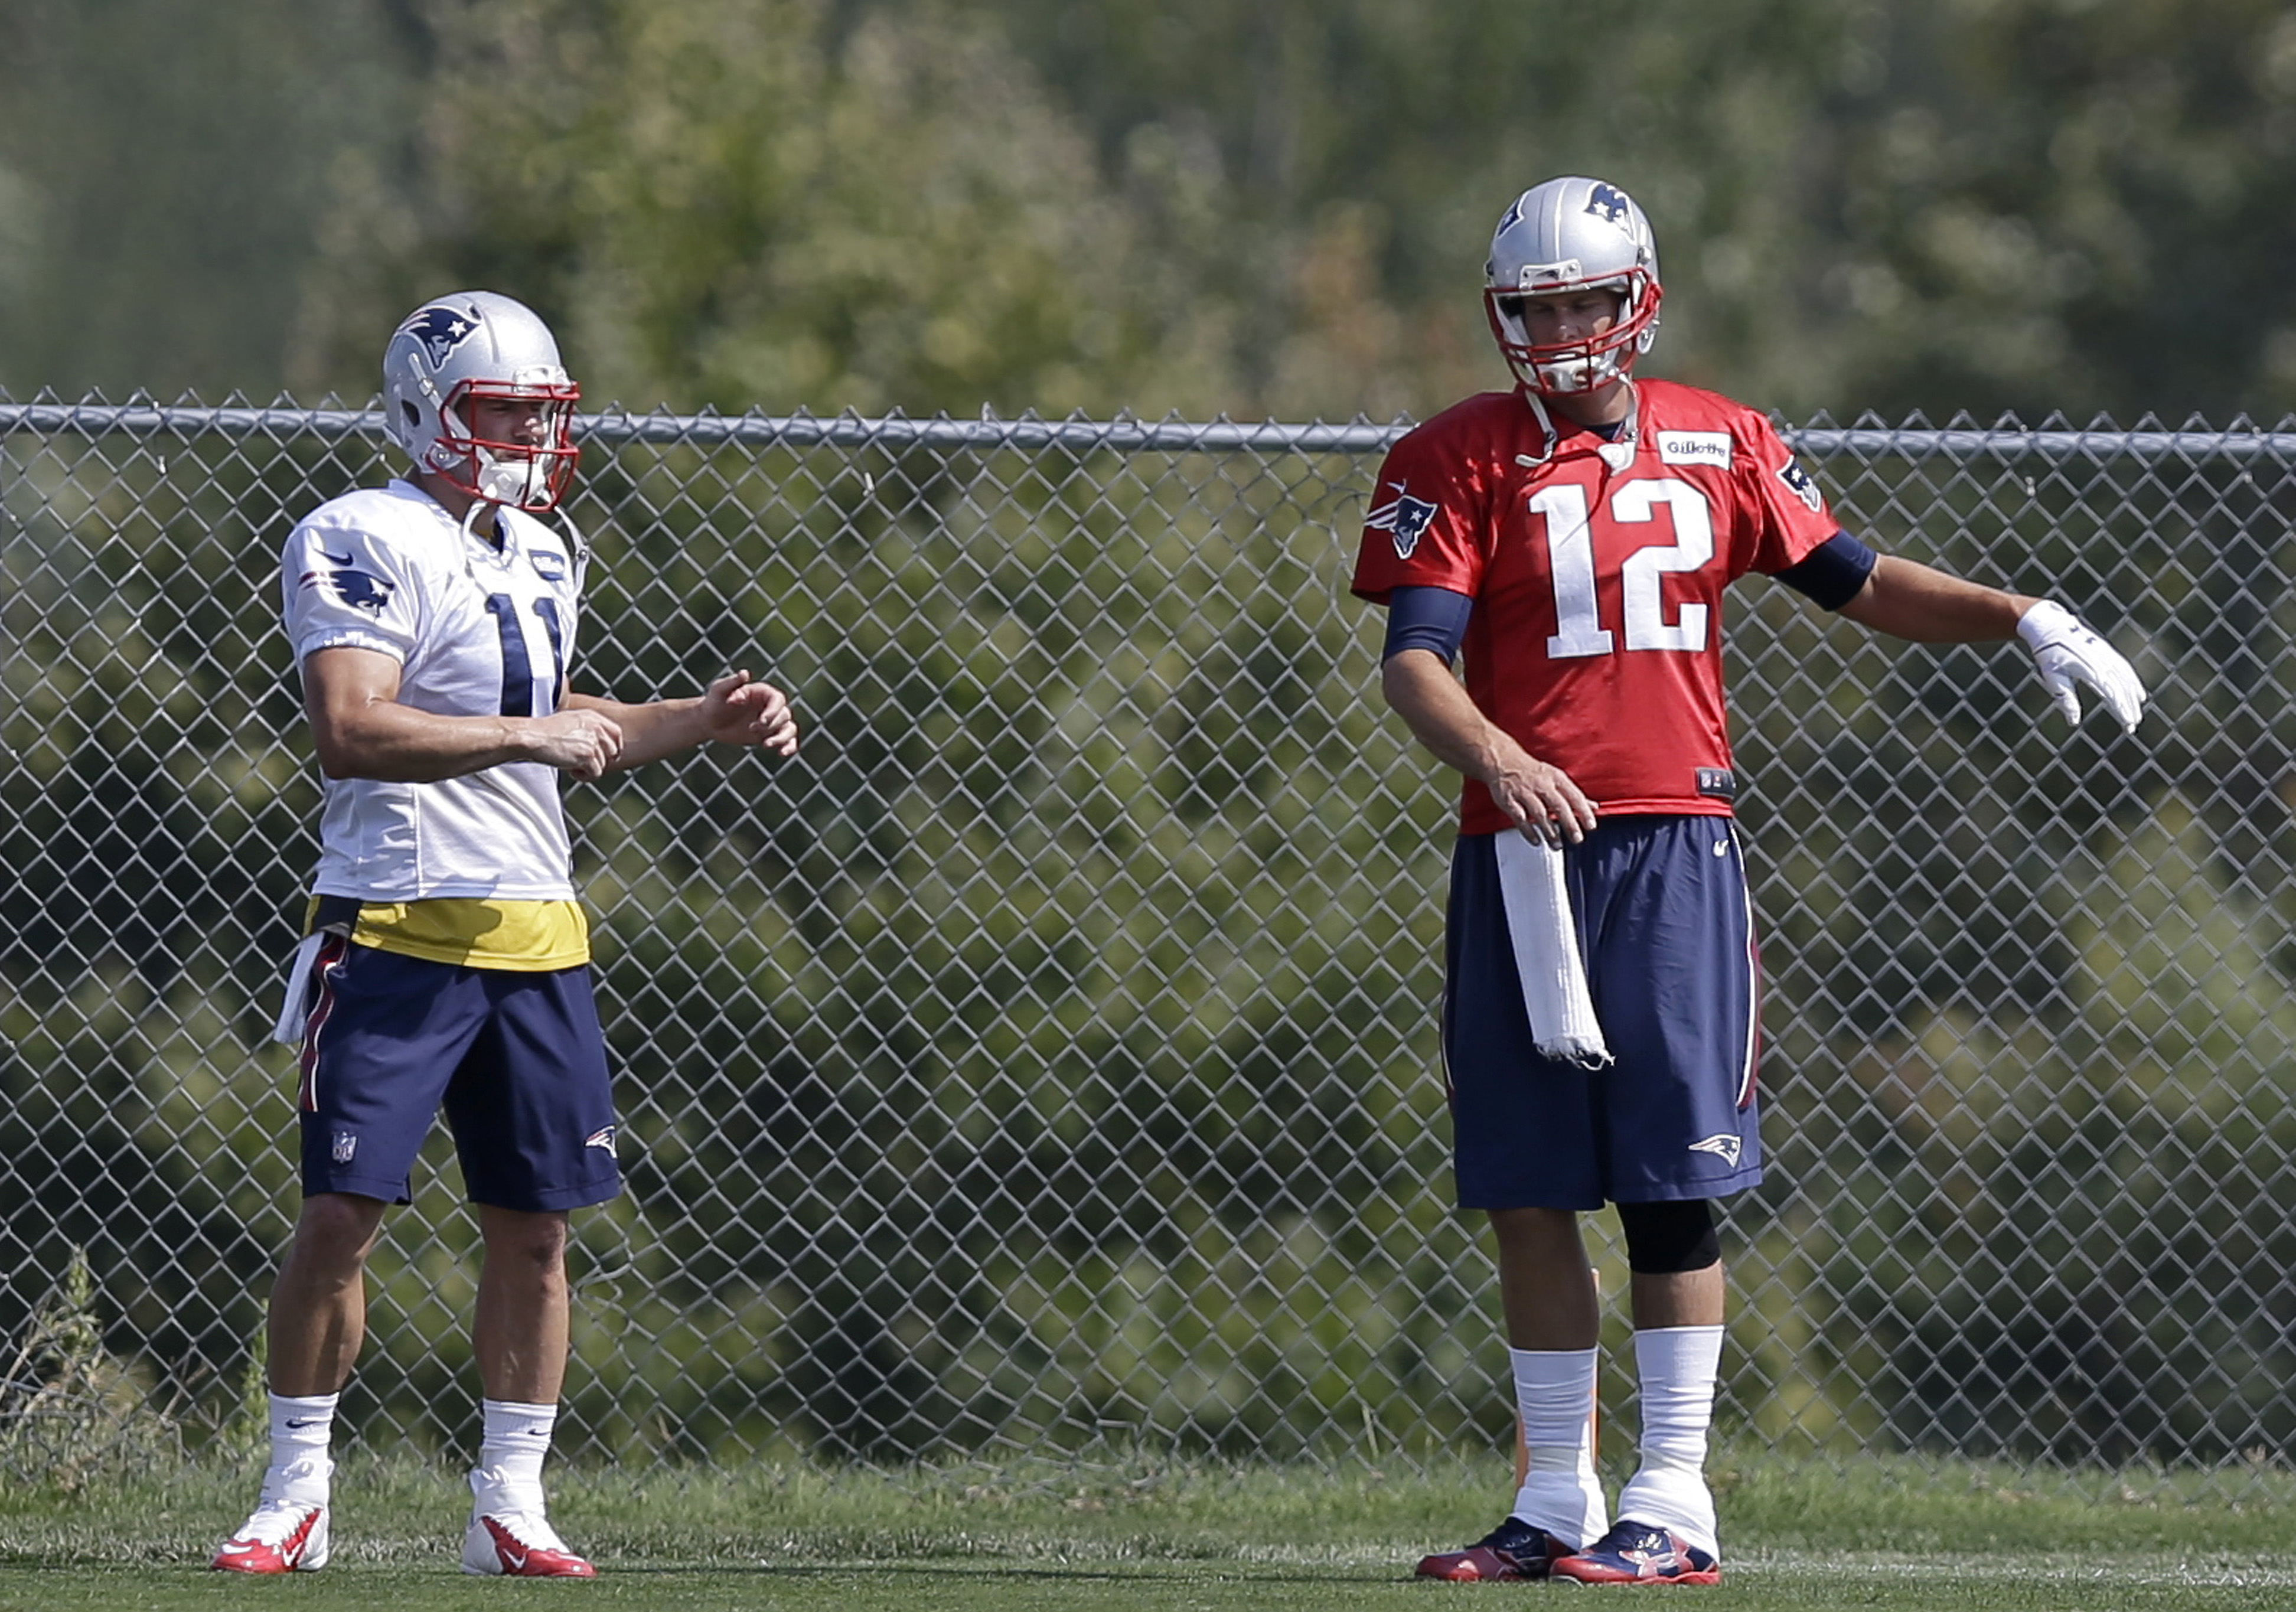 New England Patriots wide receiver Julian Edelman, left, and quarterback Tom Brady, right, stretch as they warm up on the field during an NFL football practice, Tuesday, Sept. 8, 2015, in Foxborough, Mass. (AP Photo/Steven Senne)